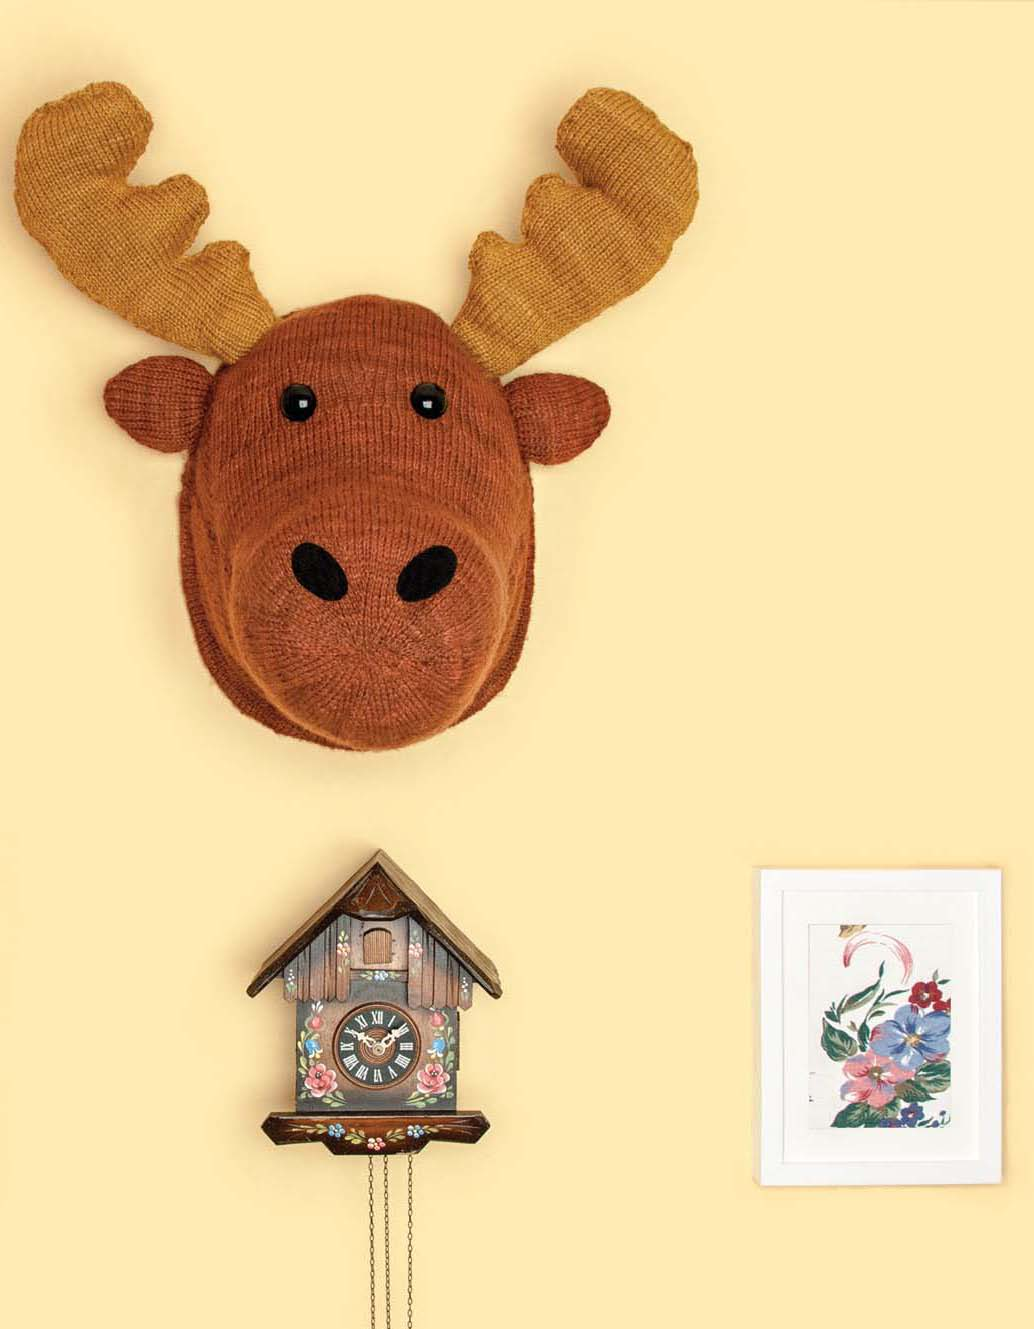 Faux Taxidermy Knits - Moose Head beauty image